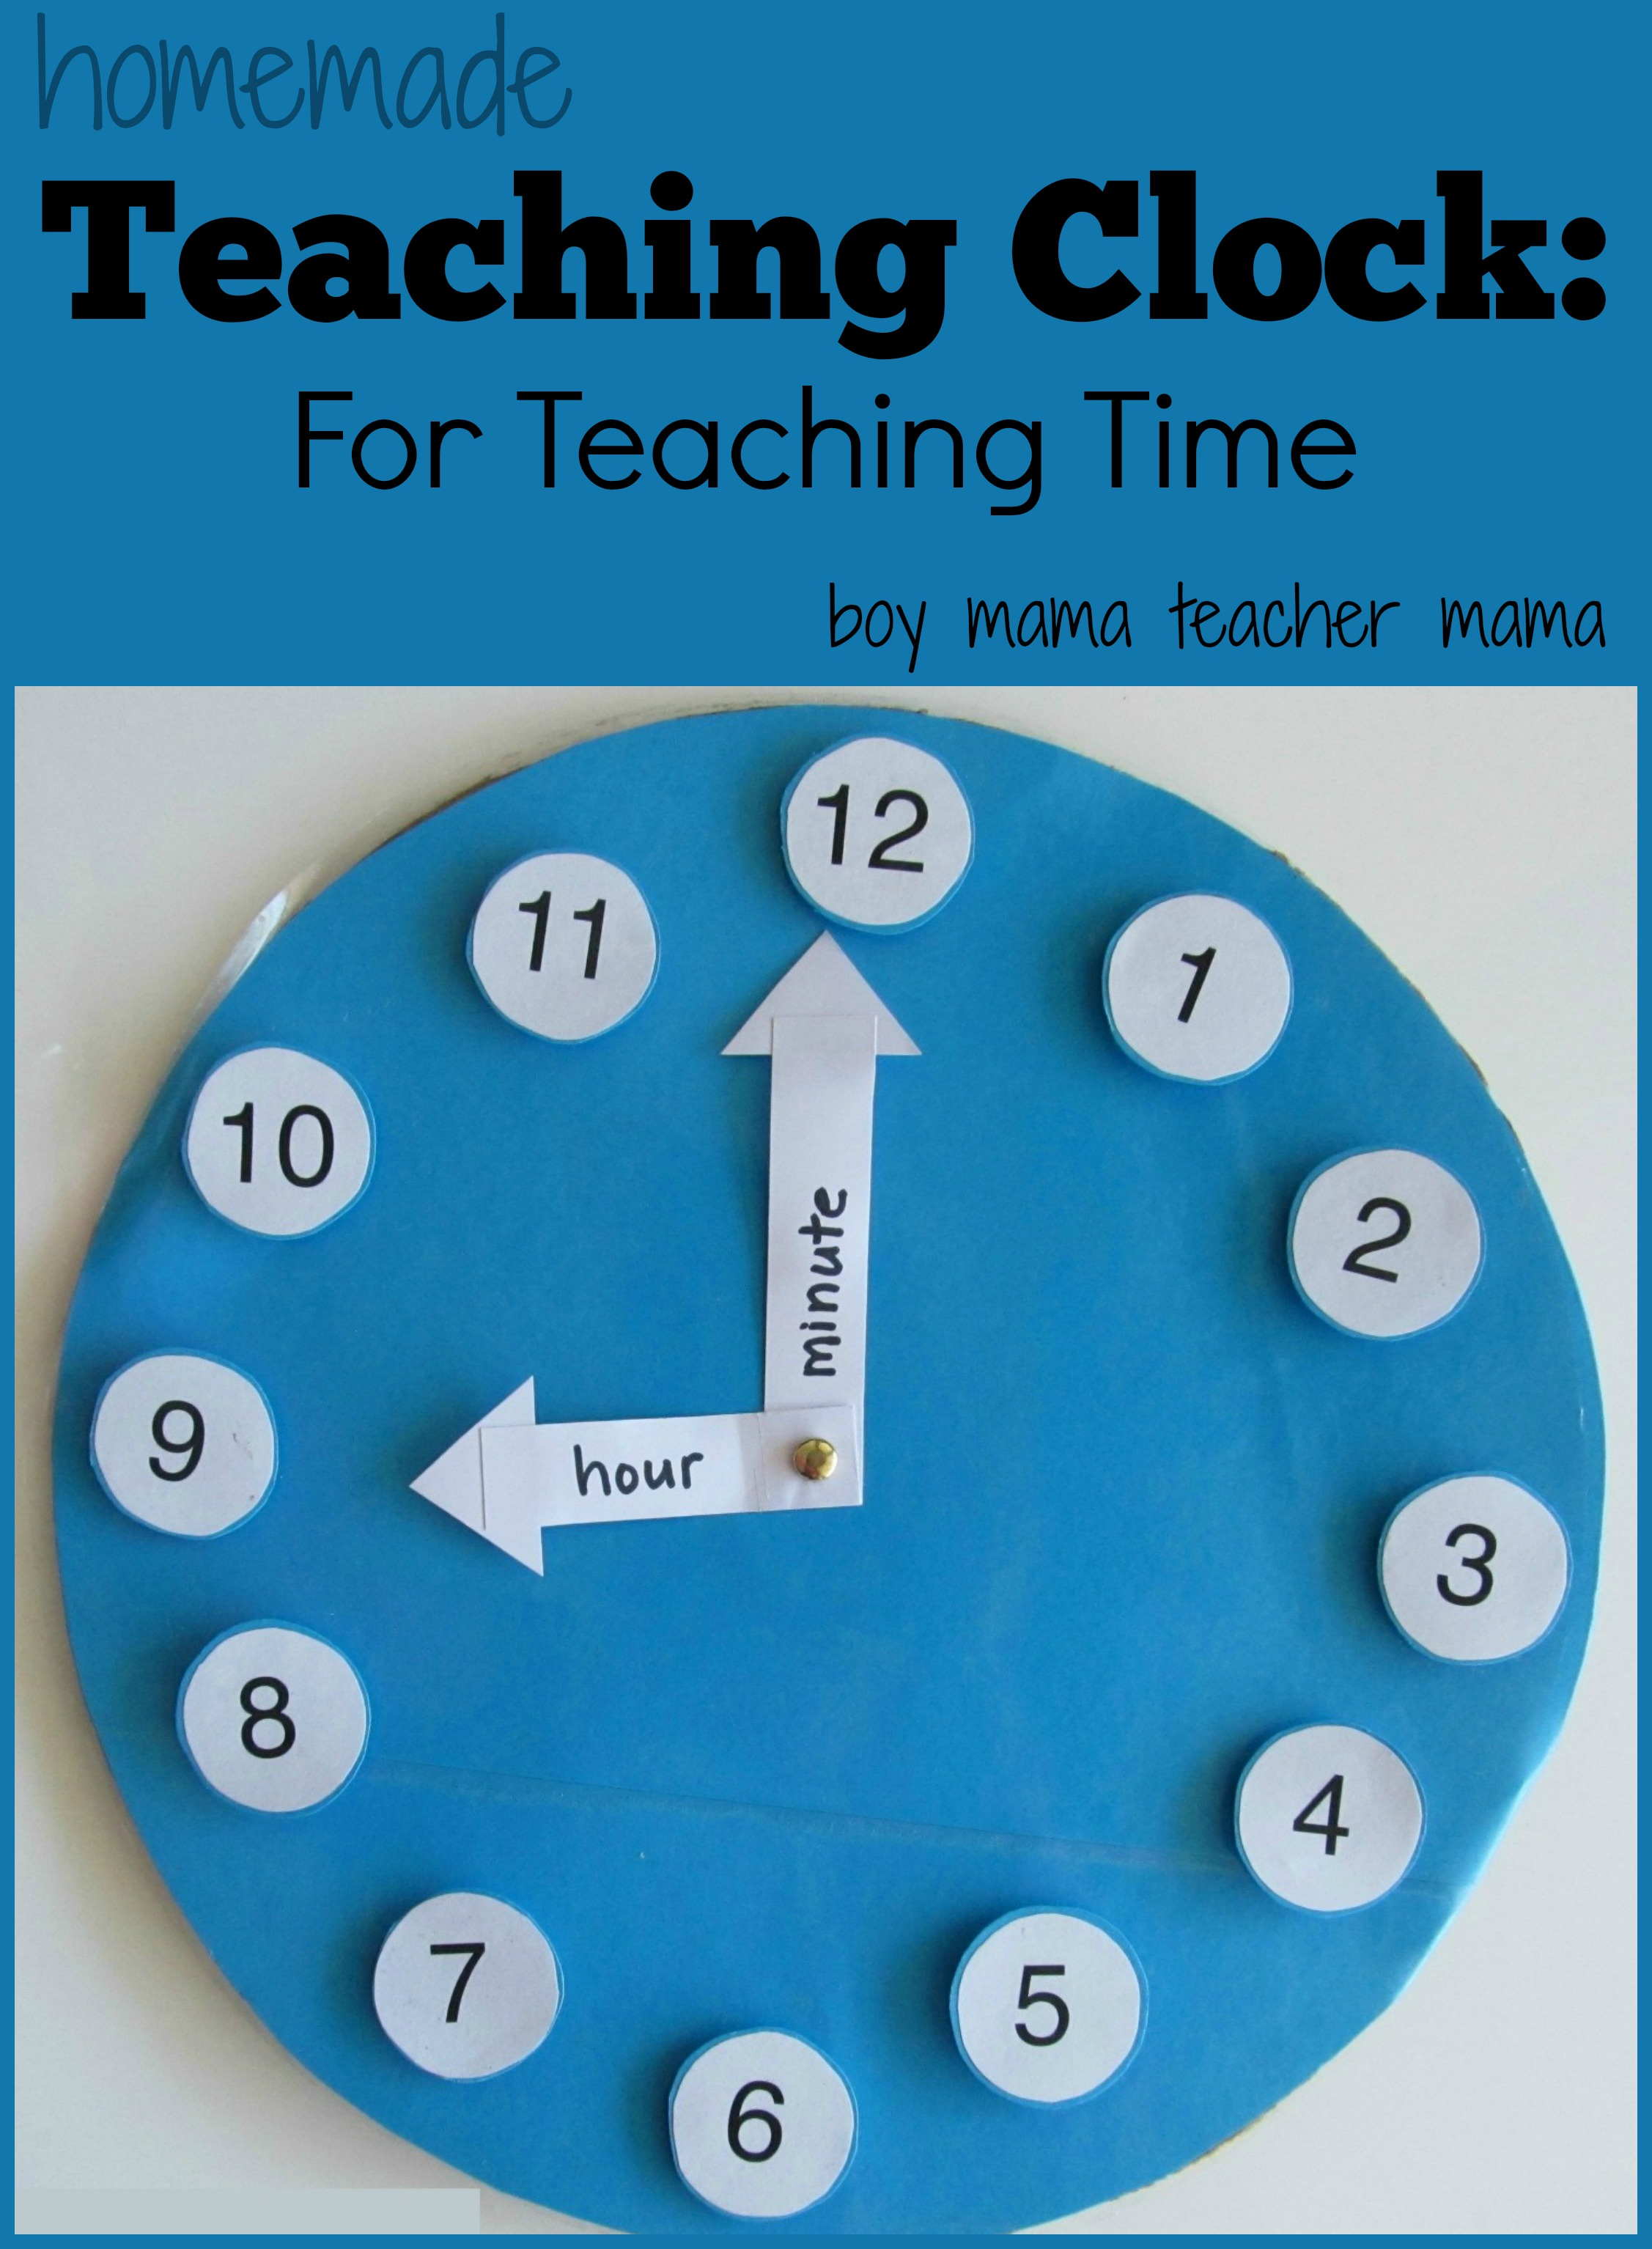 Worksheet Teaching Time Clock teacher mama a homemade teaching clock boy clock